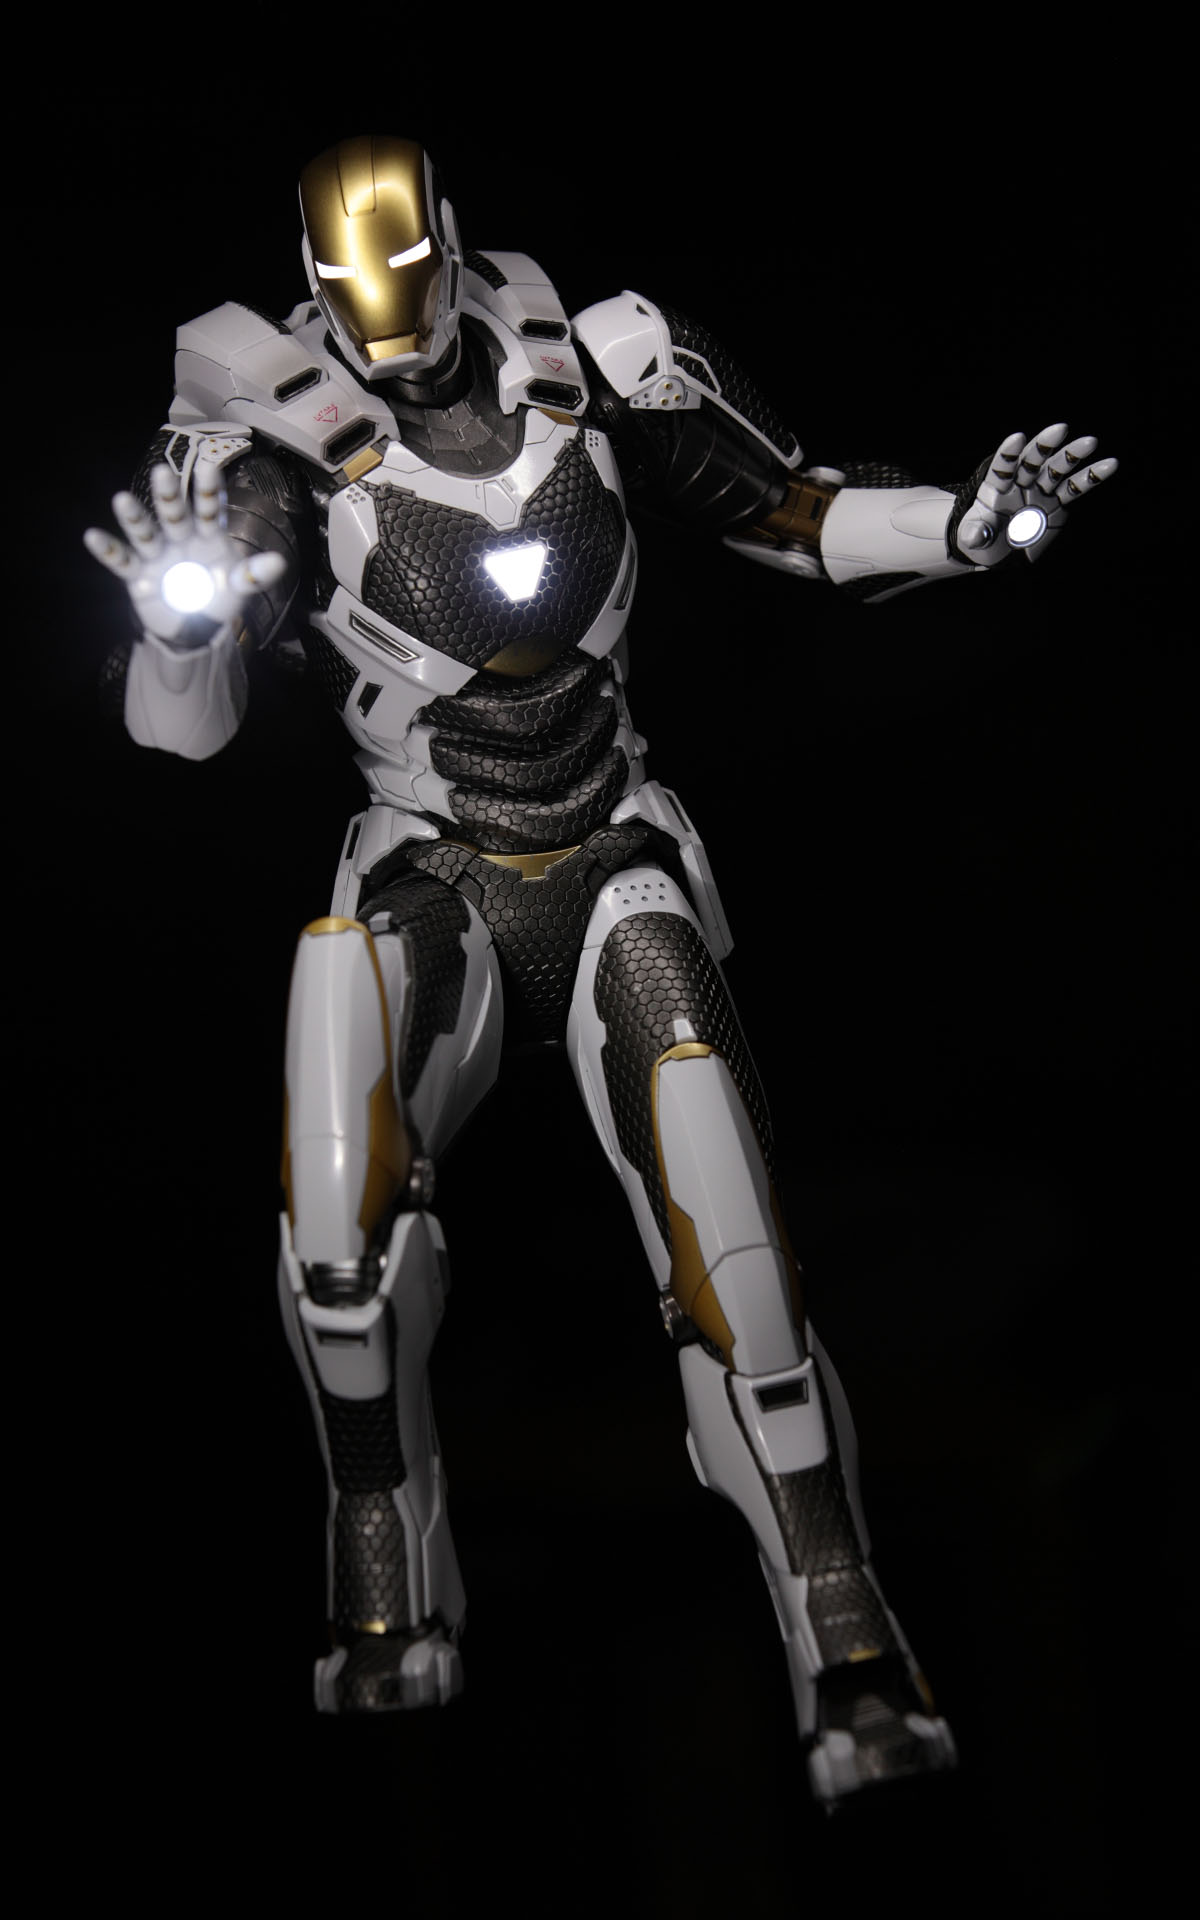 hottoys-iron-man3-mark-39-starboost-picture05